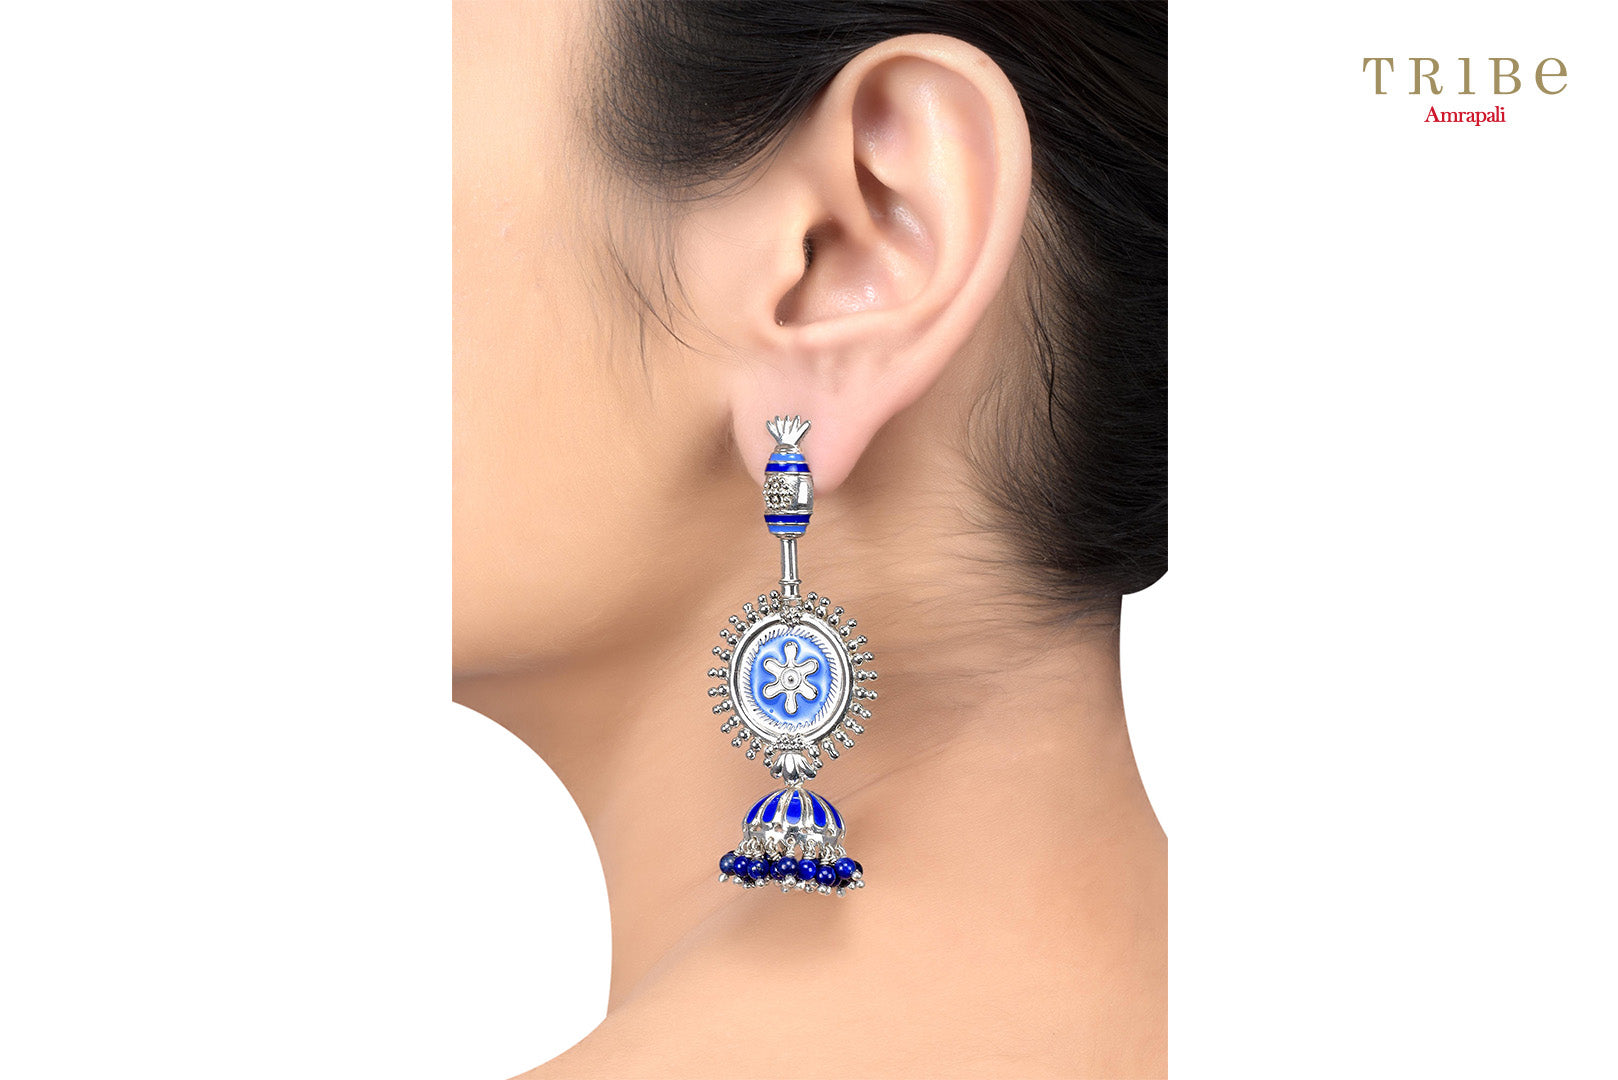 Beautiful Tribe Amrapali floral rawa lapis enameled silver jhumki earrings buy online in USA.  If you want to shop such ethnic Indian silver jewelry in USA, then look no further than Pure Elegance exclusive fashion store or shop online.-ear view